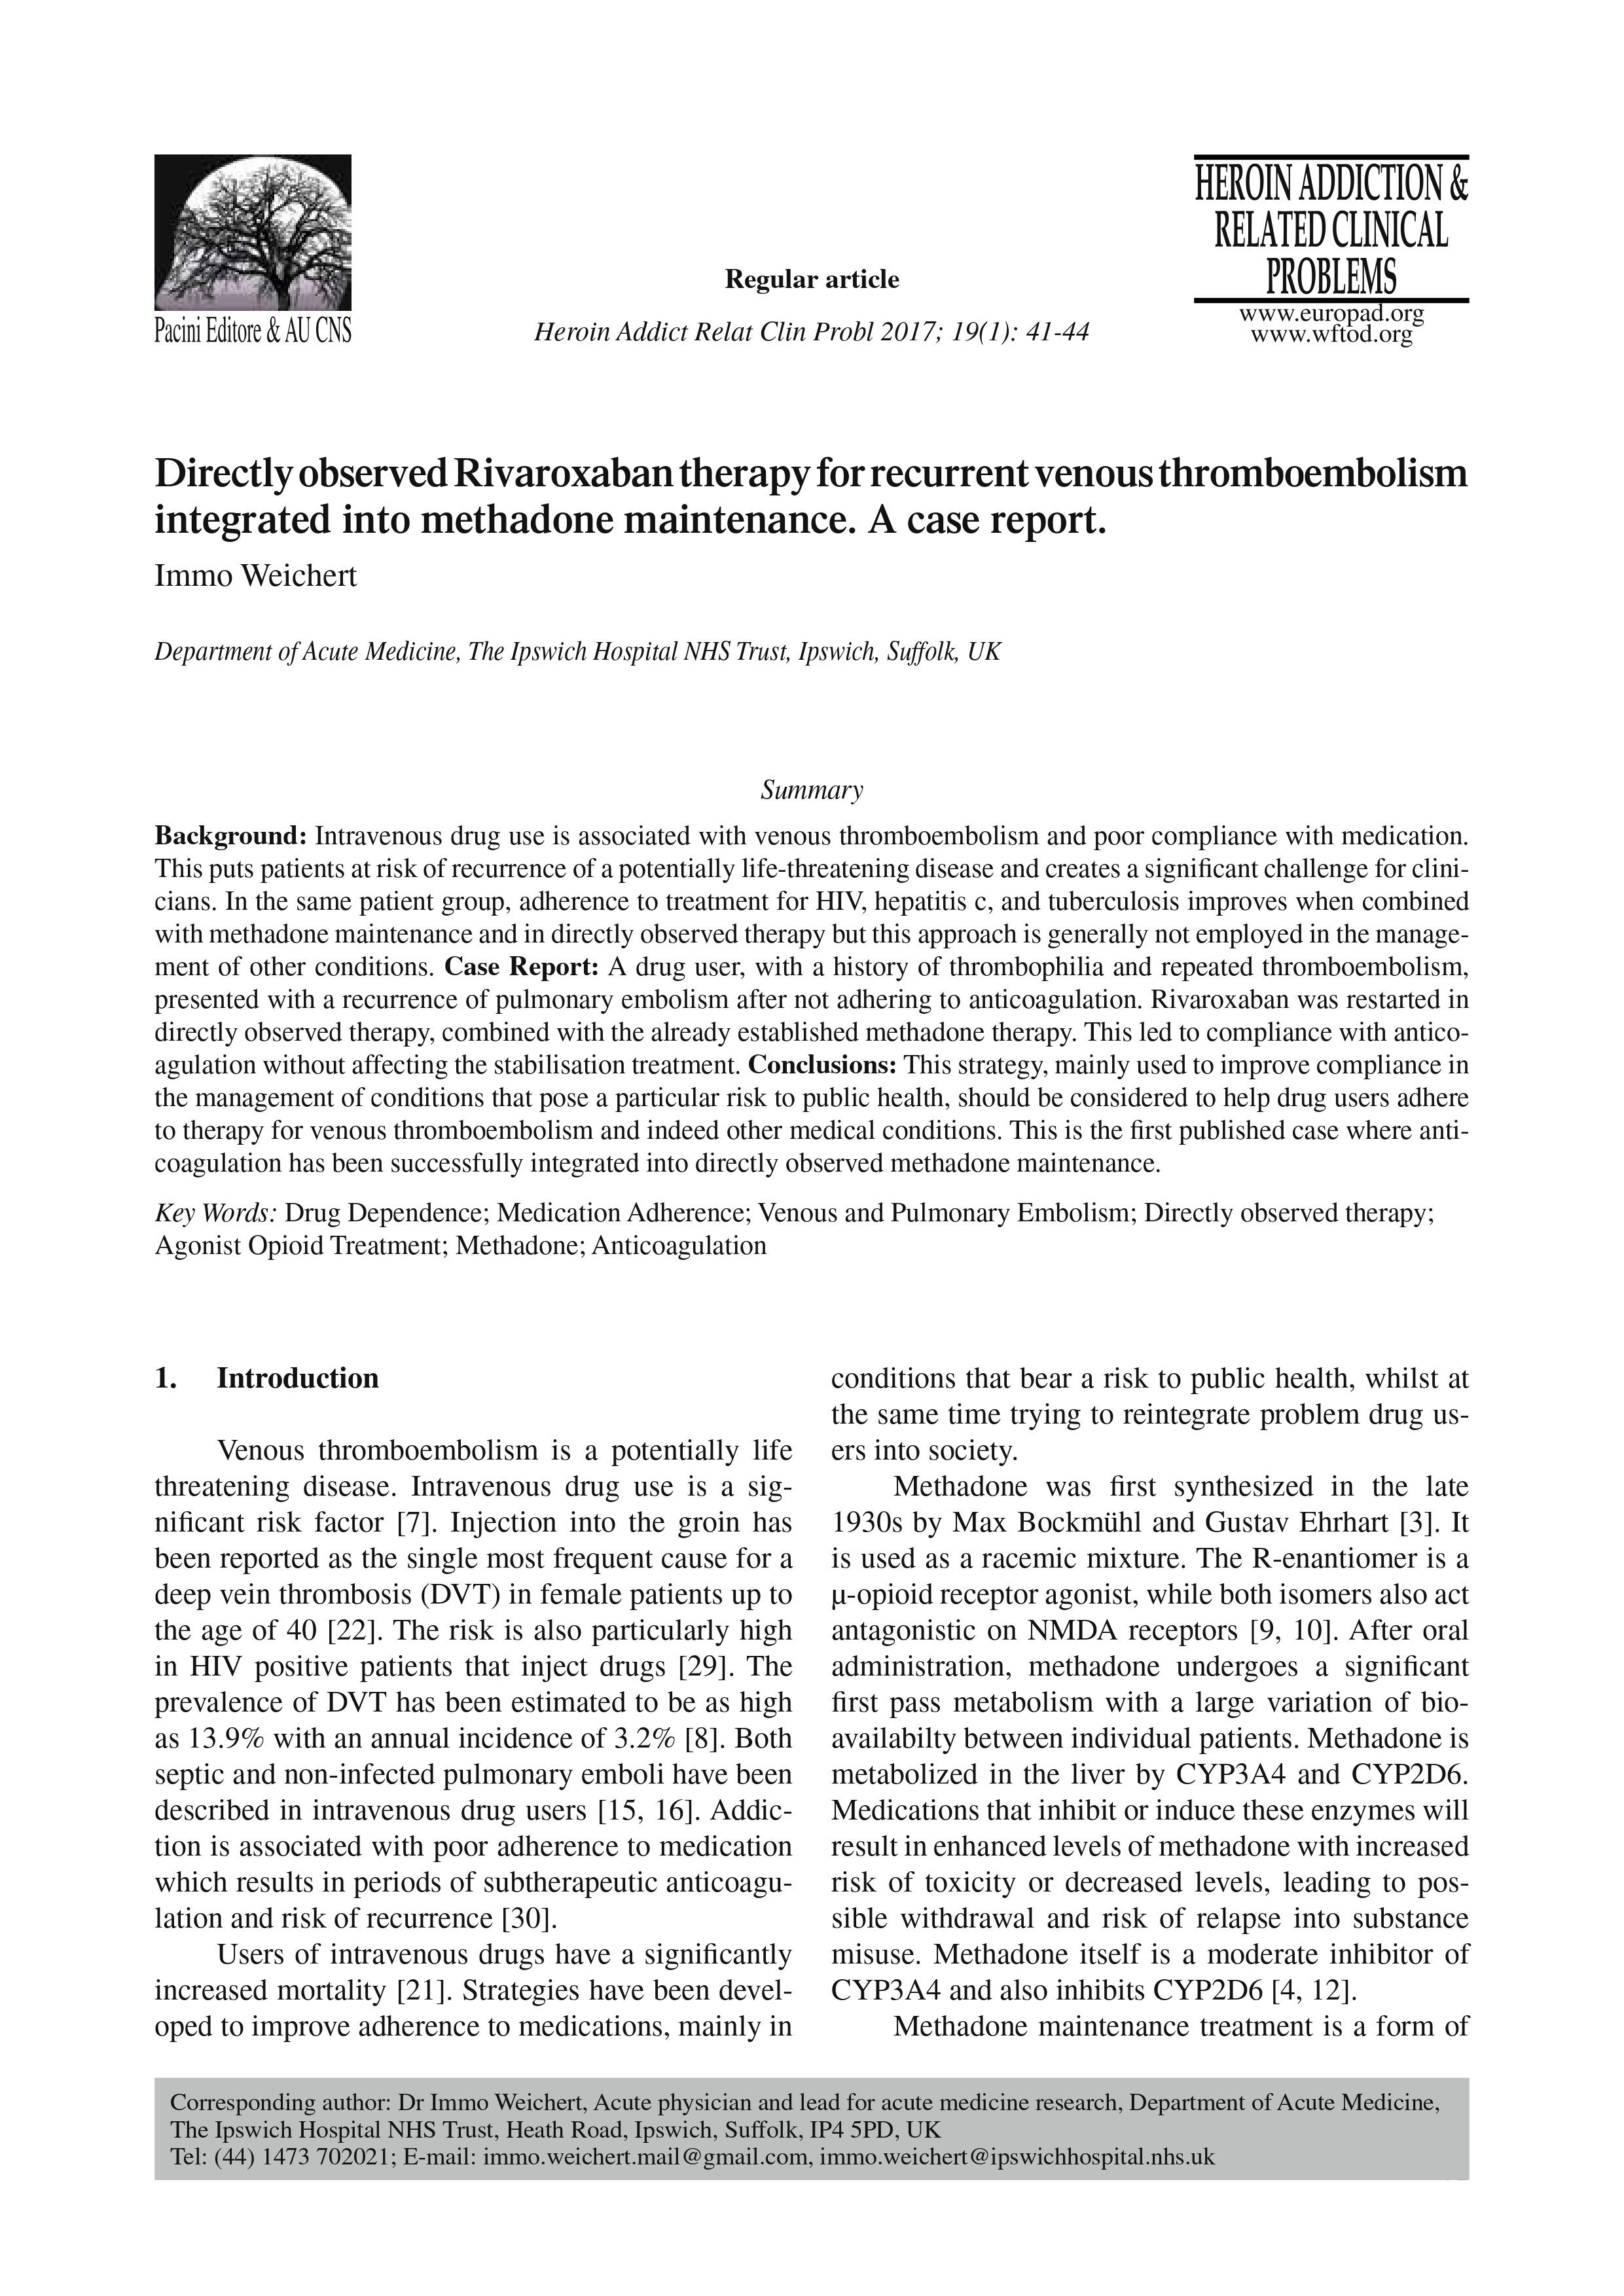 Immo Weichert, Directly observed Rivaroxaban therapy for recurrent venous thromboembolism integrated into methadone maintenance. A case report. Heroin Addiction and Related Clinical Problems. 2017; 19(1): 41-44. Epub 2016 July 11.